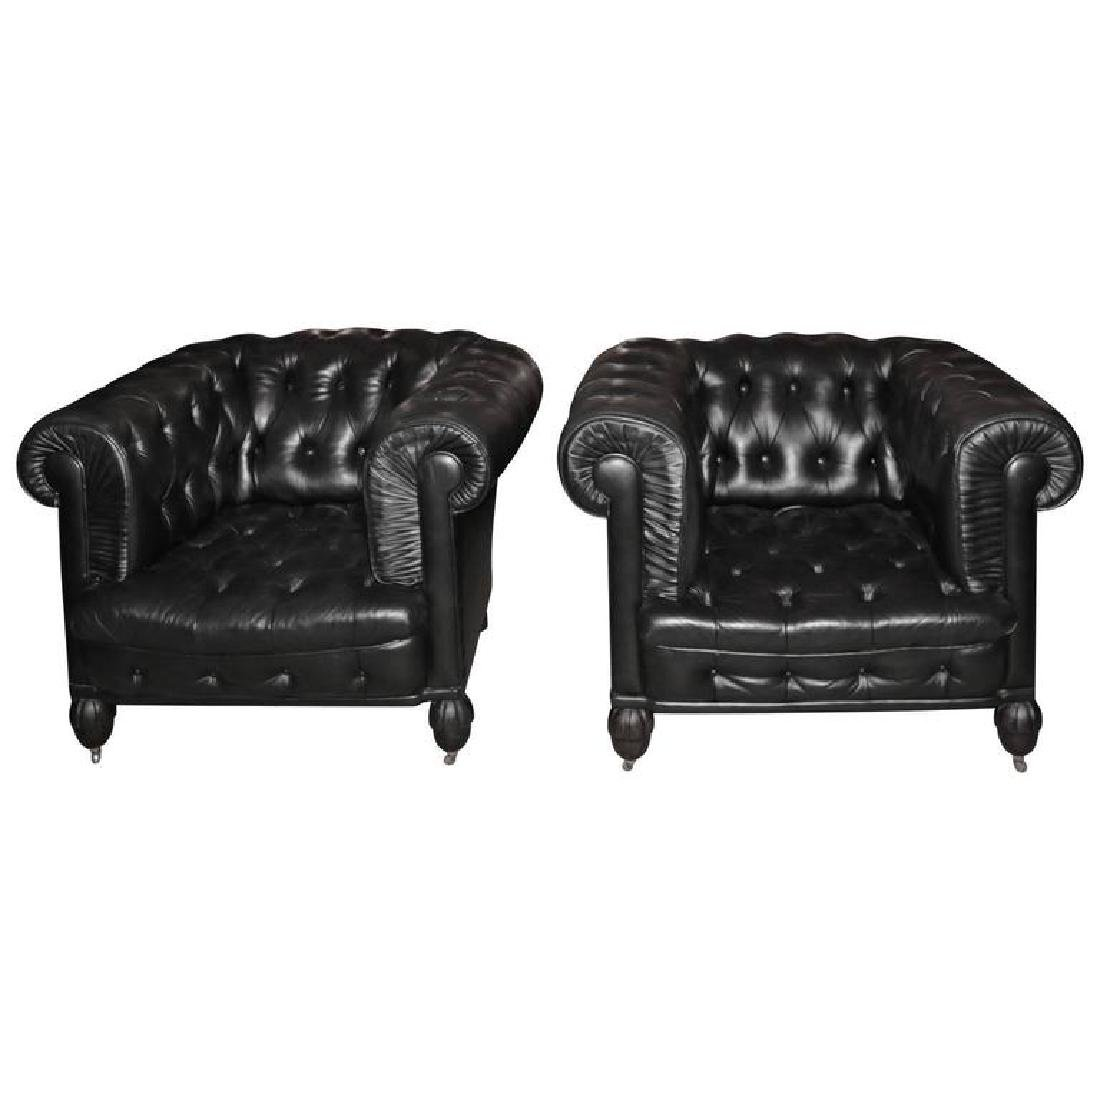 Pair of Chesterfield Leather Tufted Club Seats